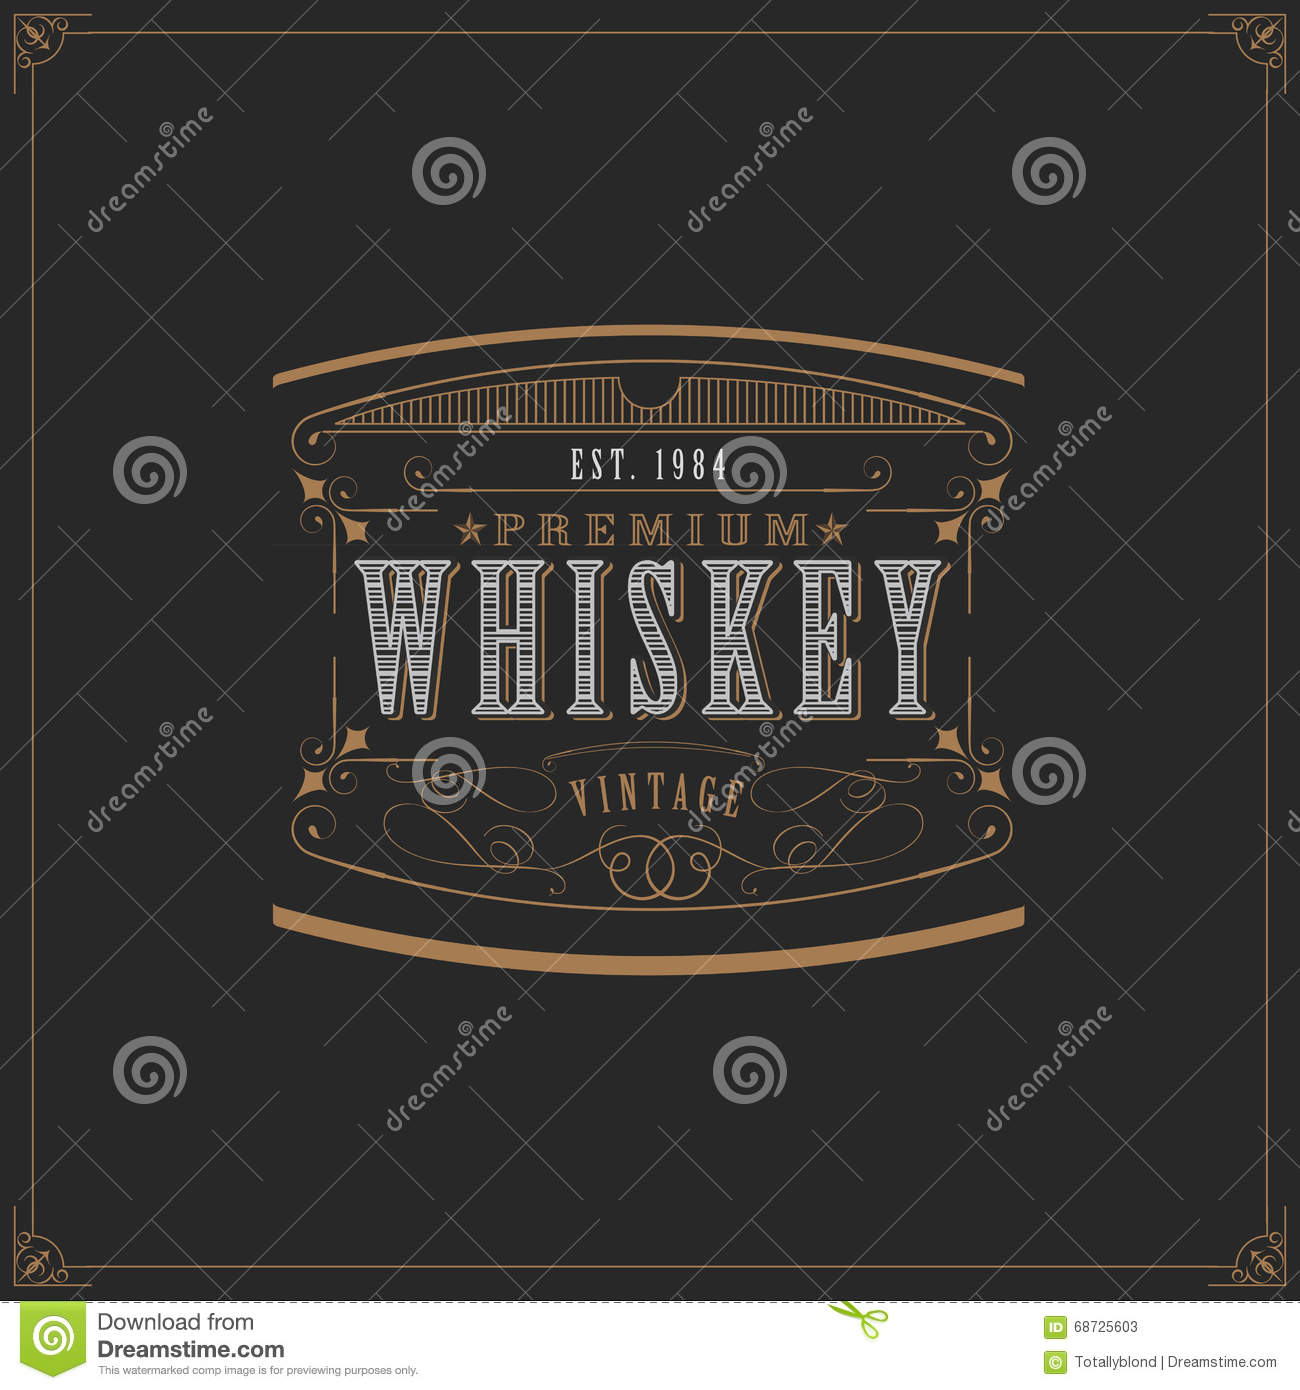 Western Design Template For Whiskey Label Stock Vector - Image ...